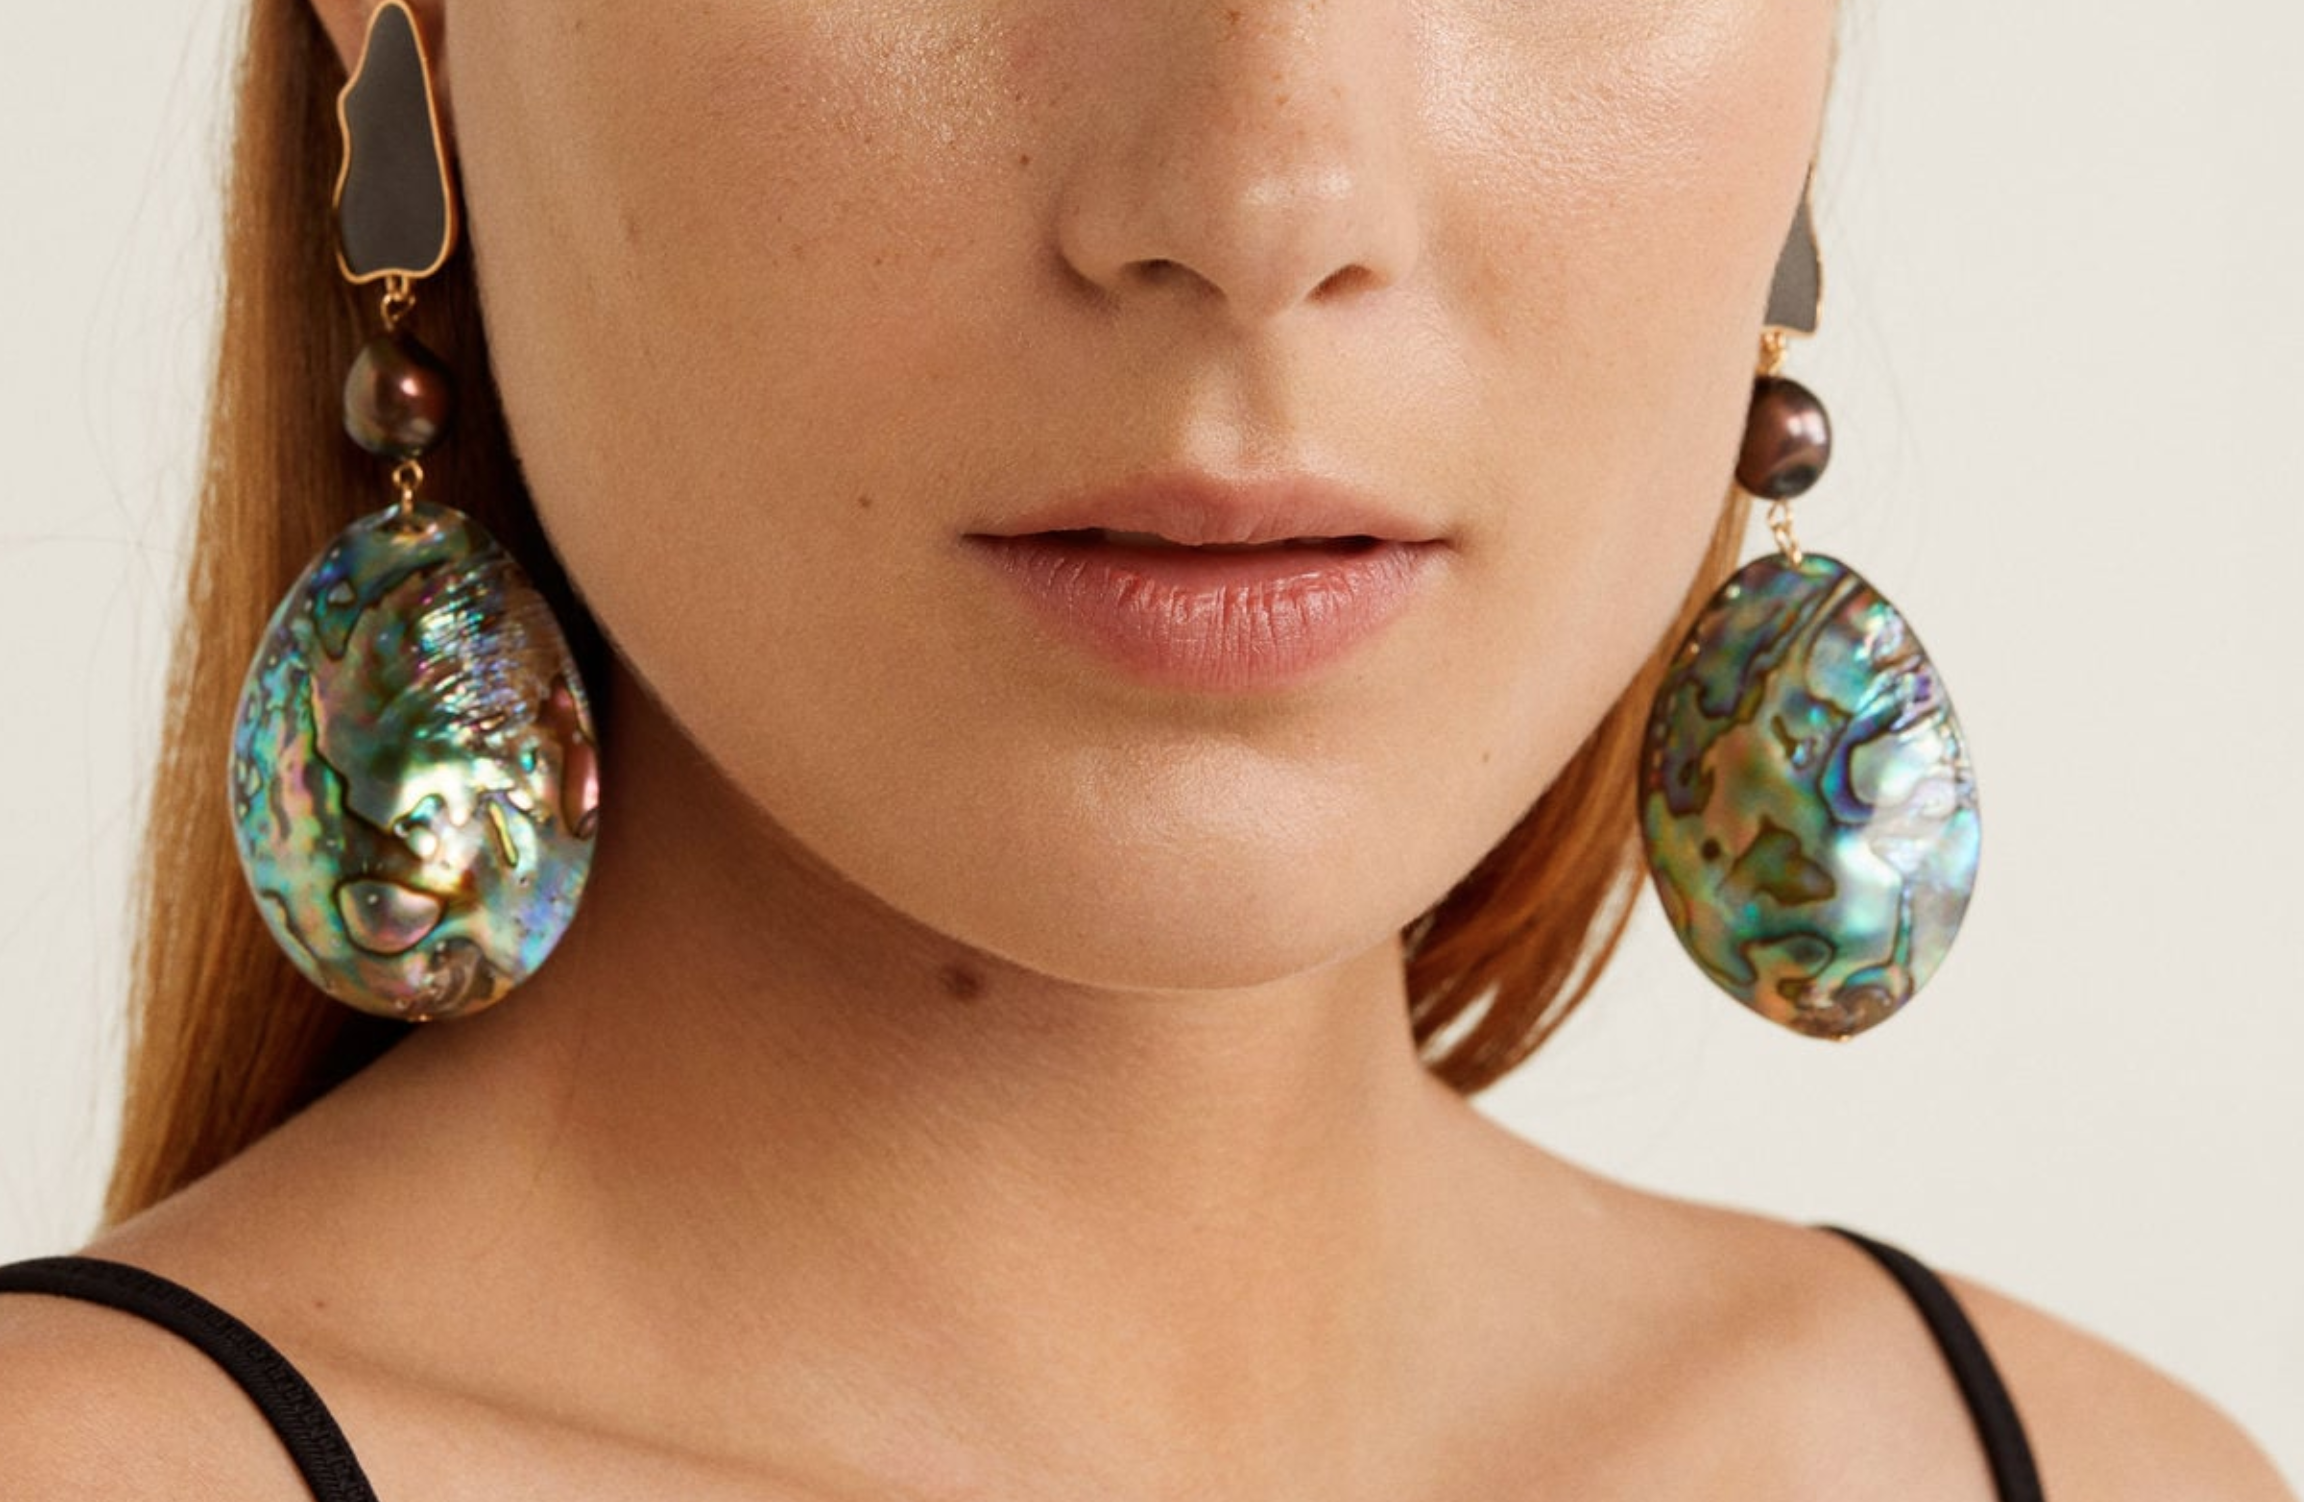 Limited edition earrings - shop them here